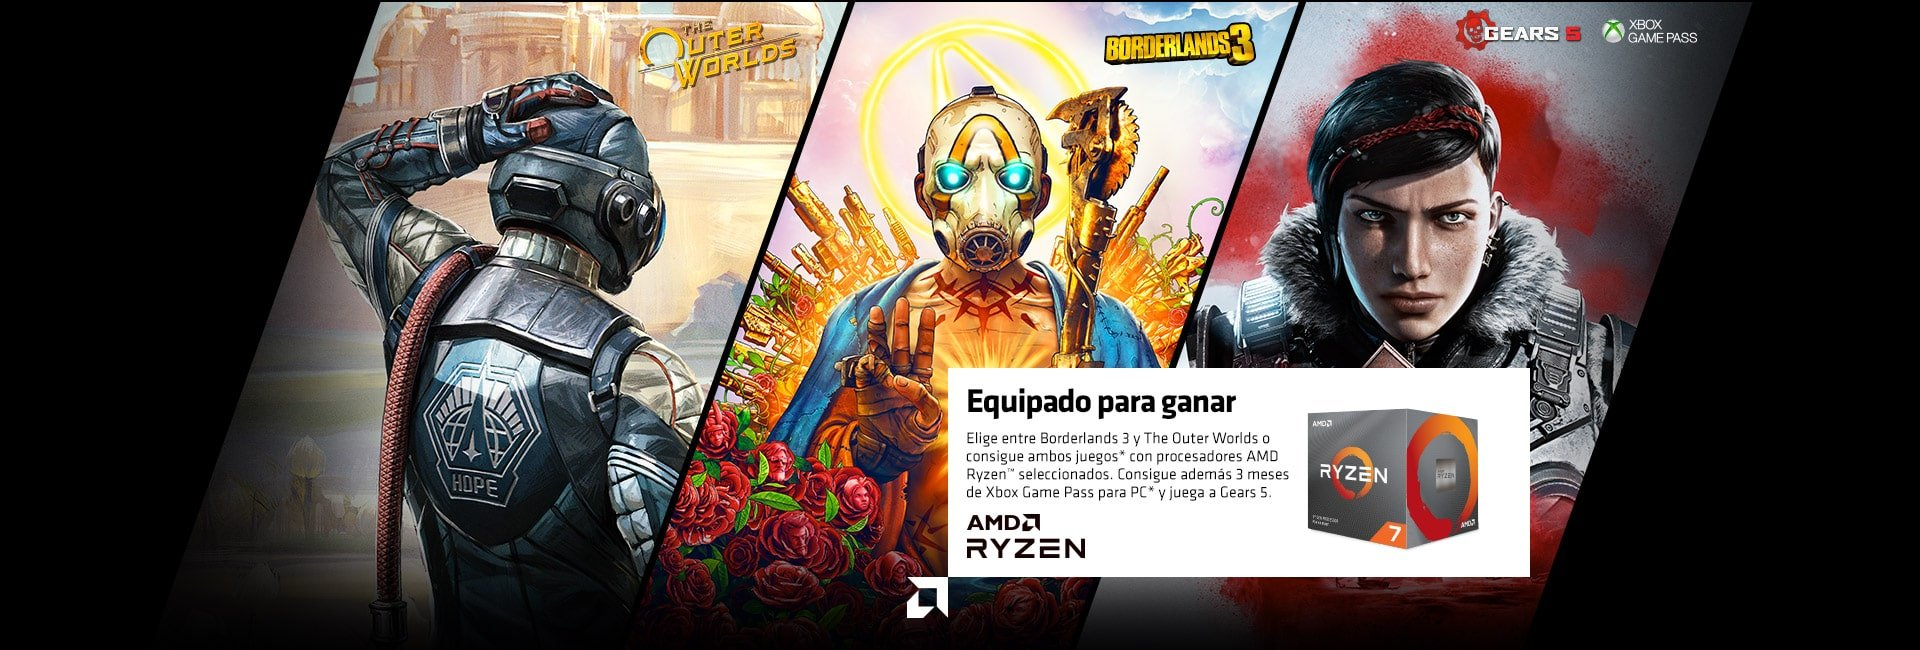 AMD  Equipado para ganar  Consigue Borderlands 3 o The Outer Worlds